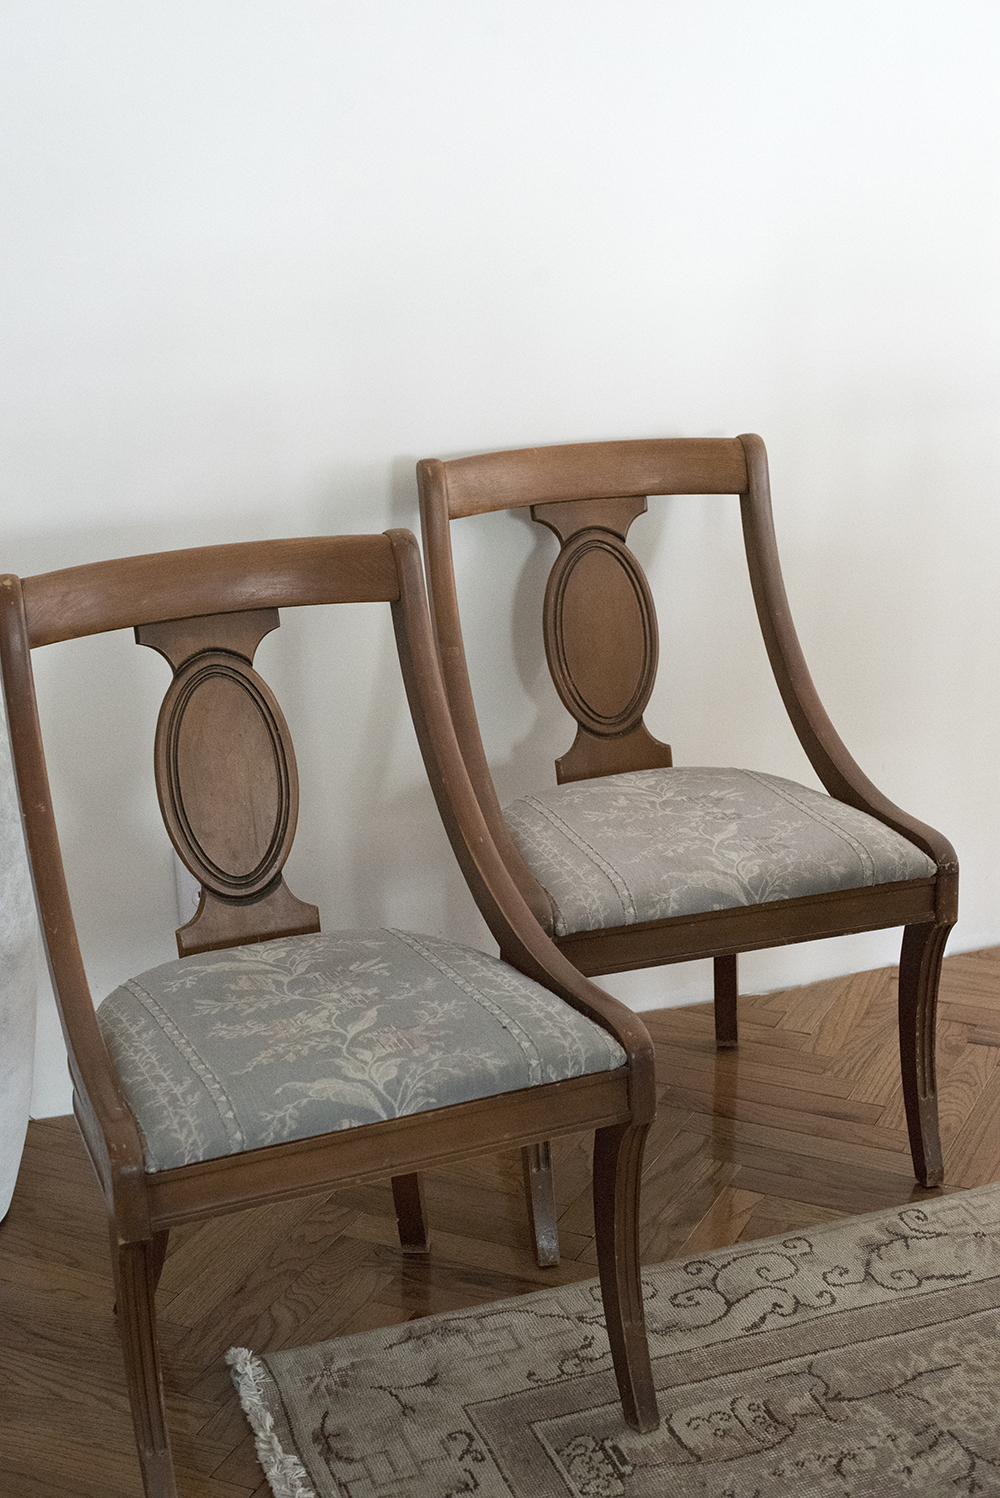 My Animal Print Chairs - A Quick Makeover